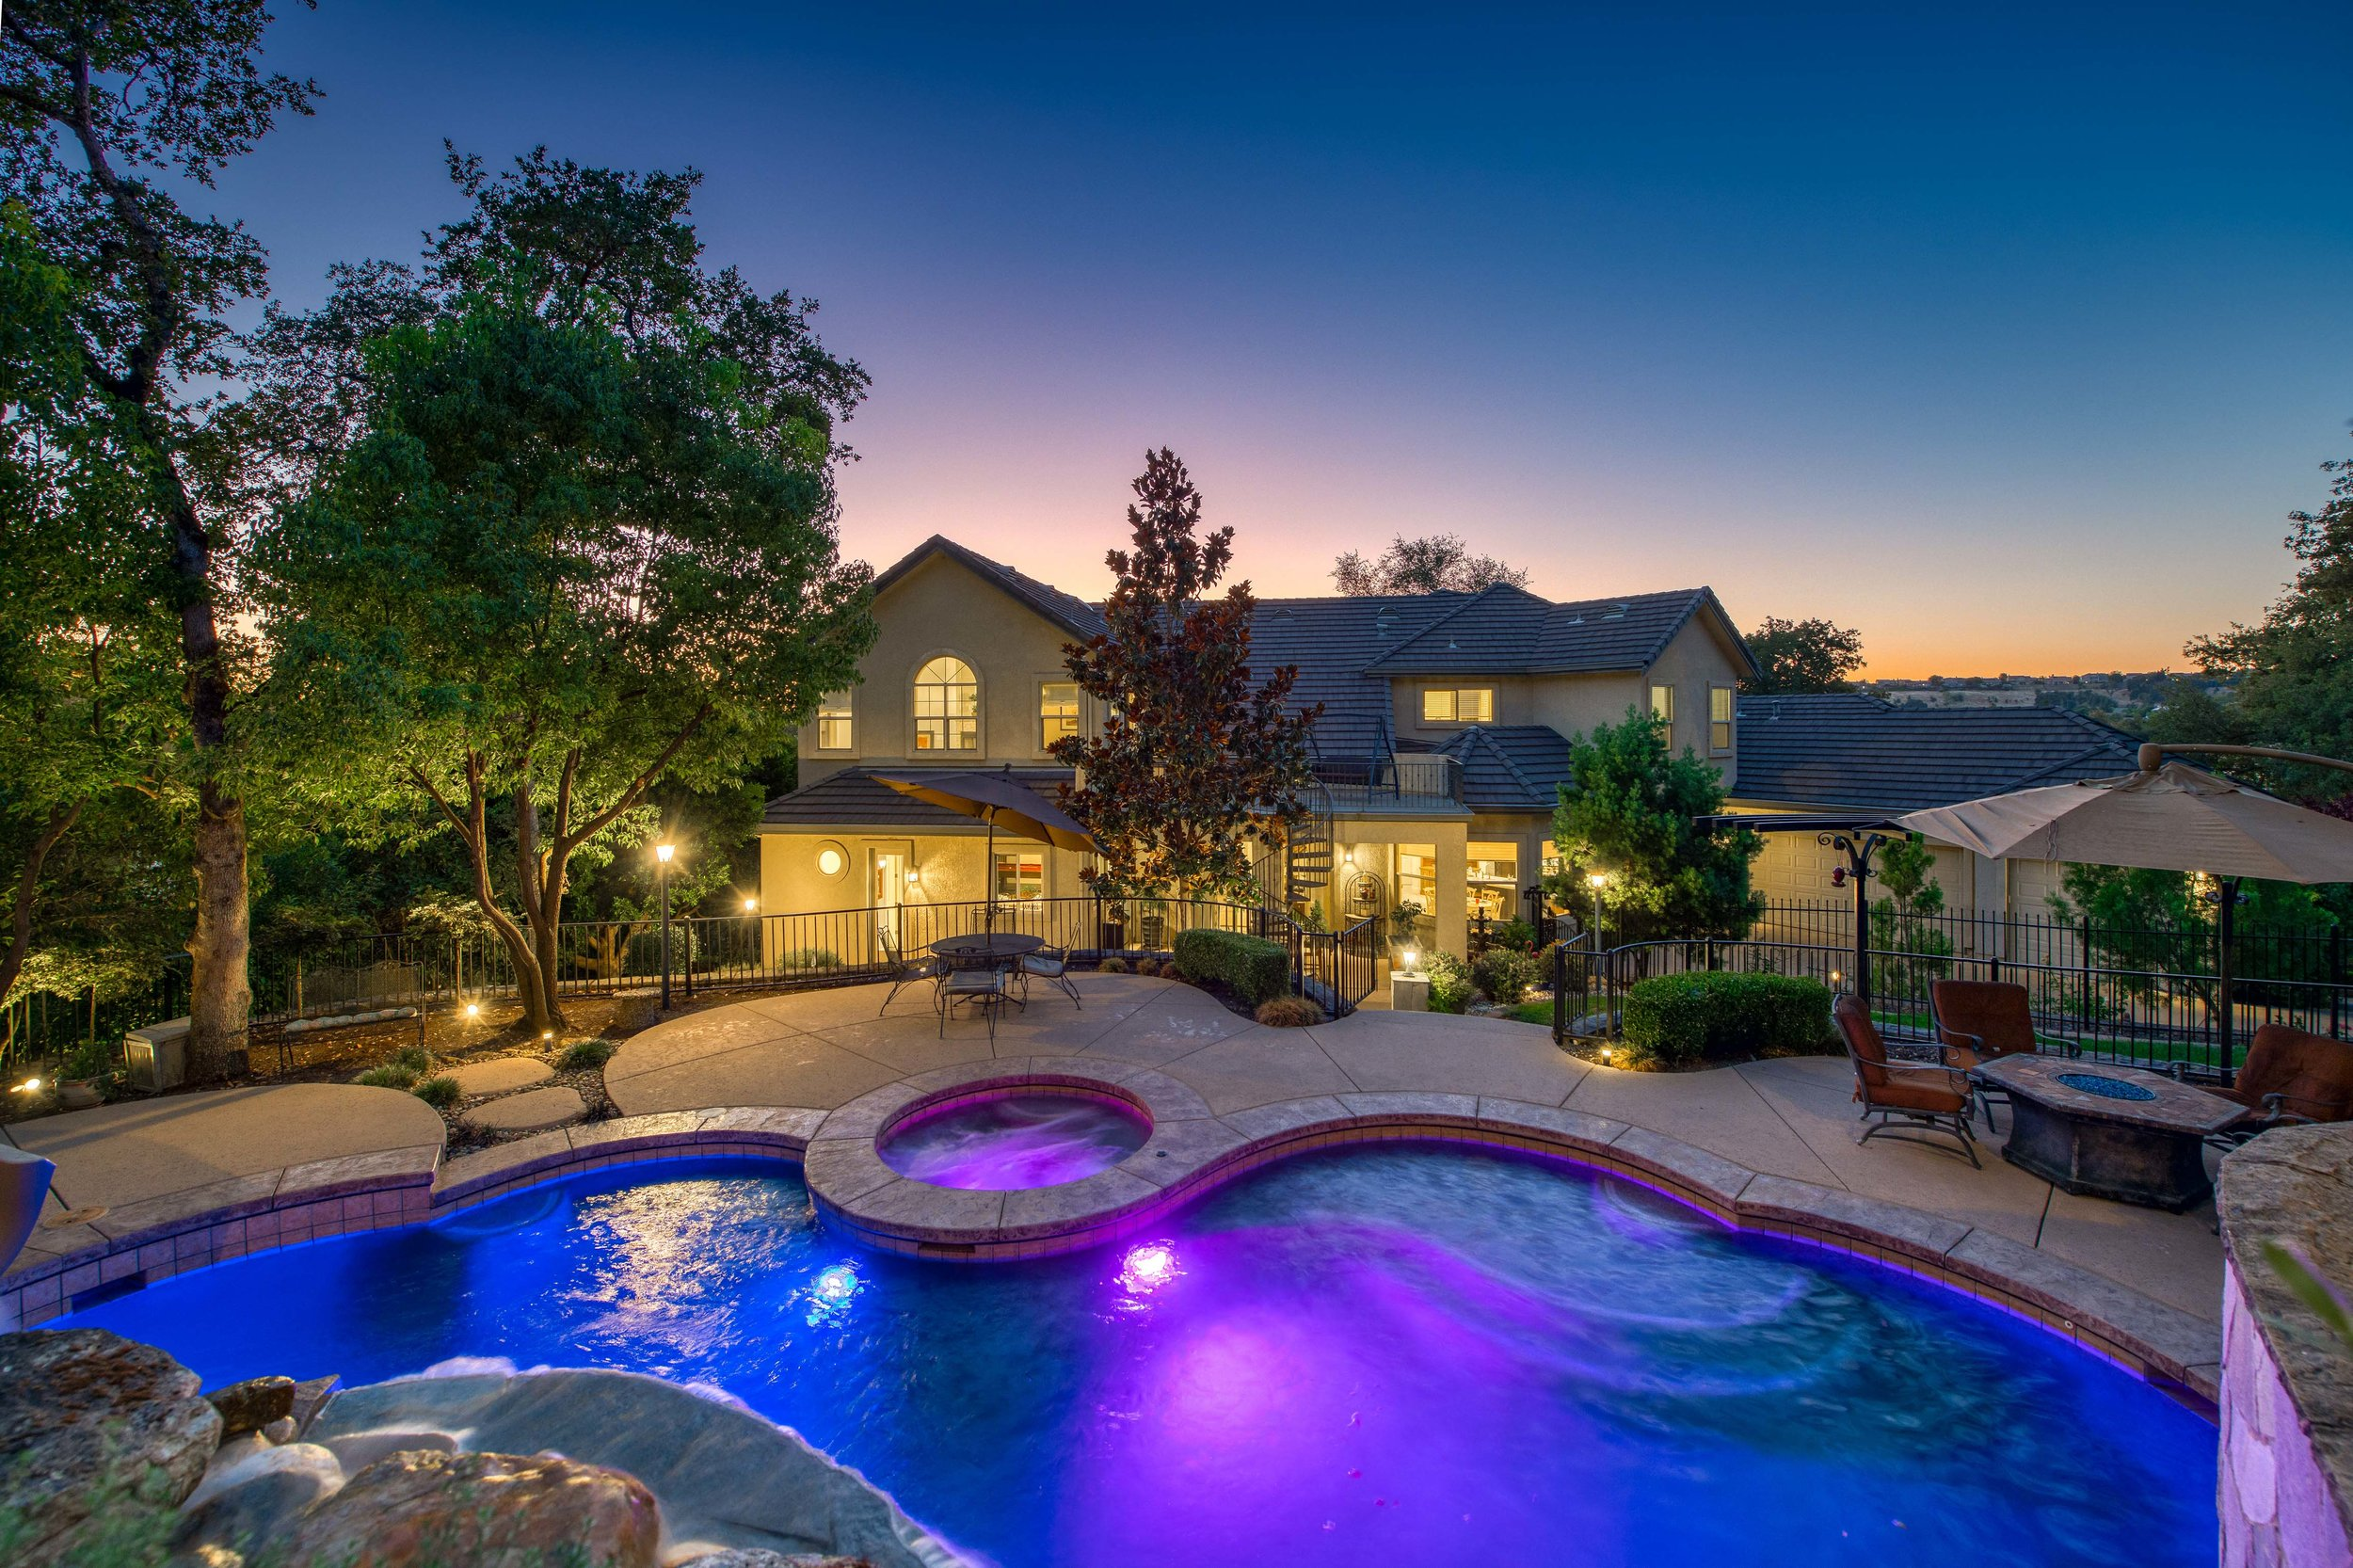 2330 Clubhouse Drive - Twilight - 12.jpg